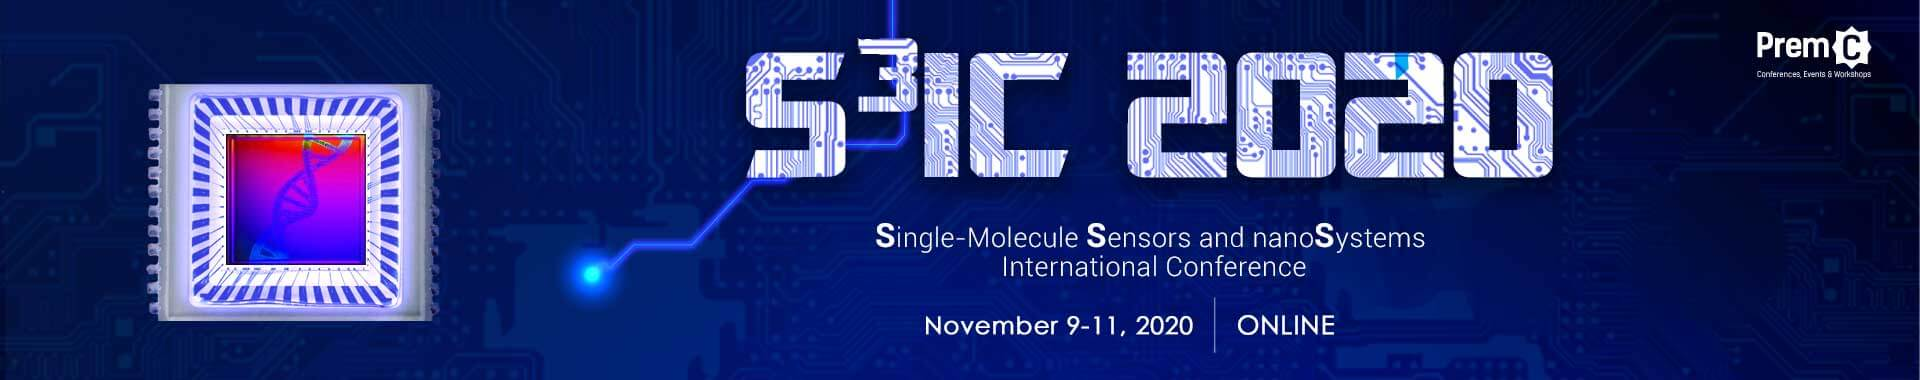 Single-Molecule Sensors and NanoSystems International Conference Banner